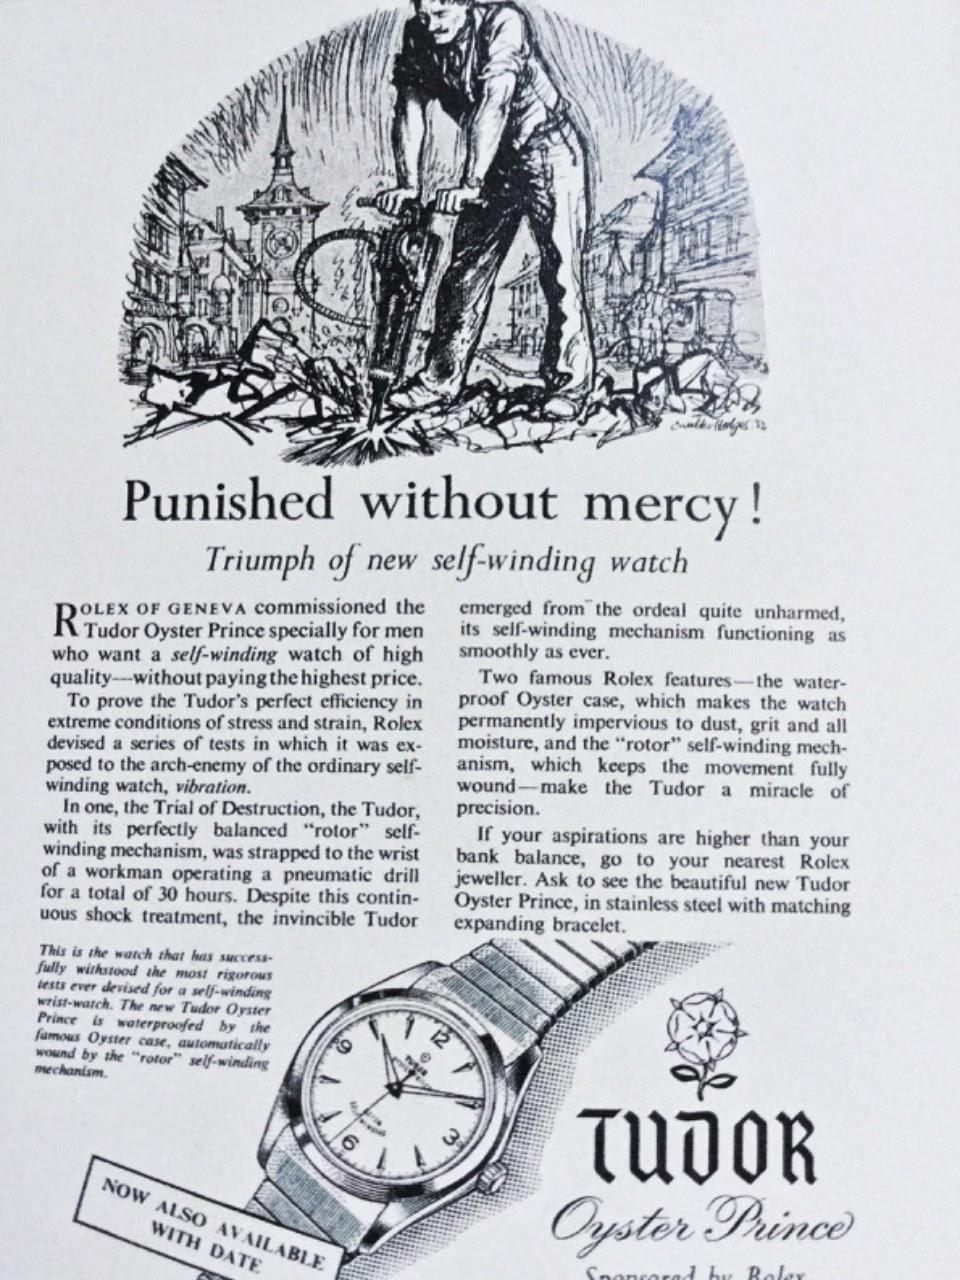 Rolex - Do you fancy being punished without mercy?